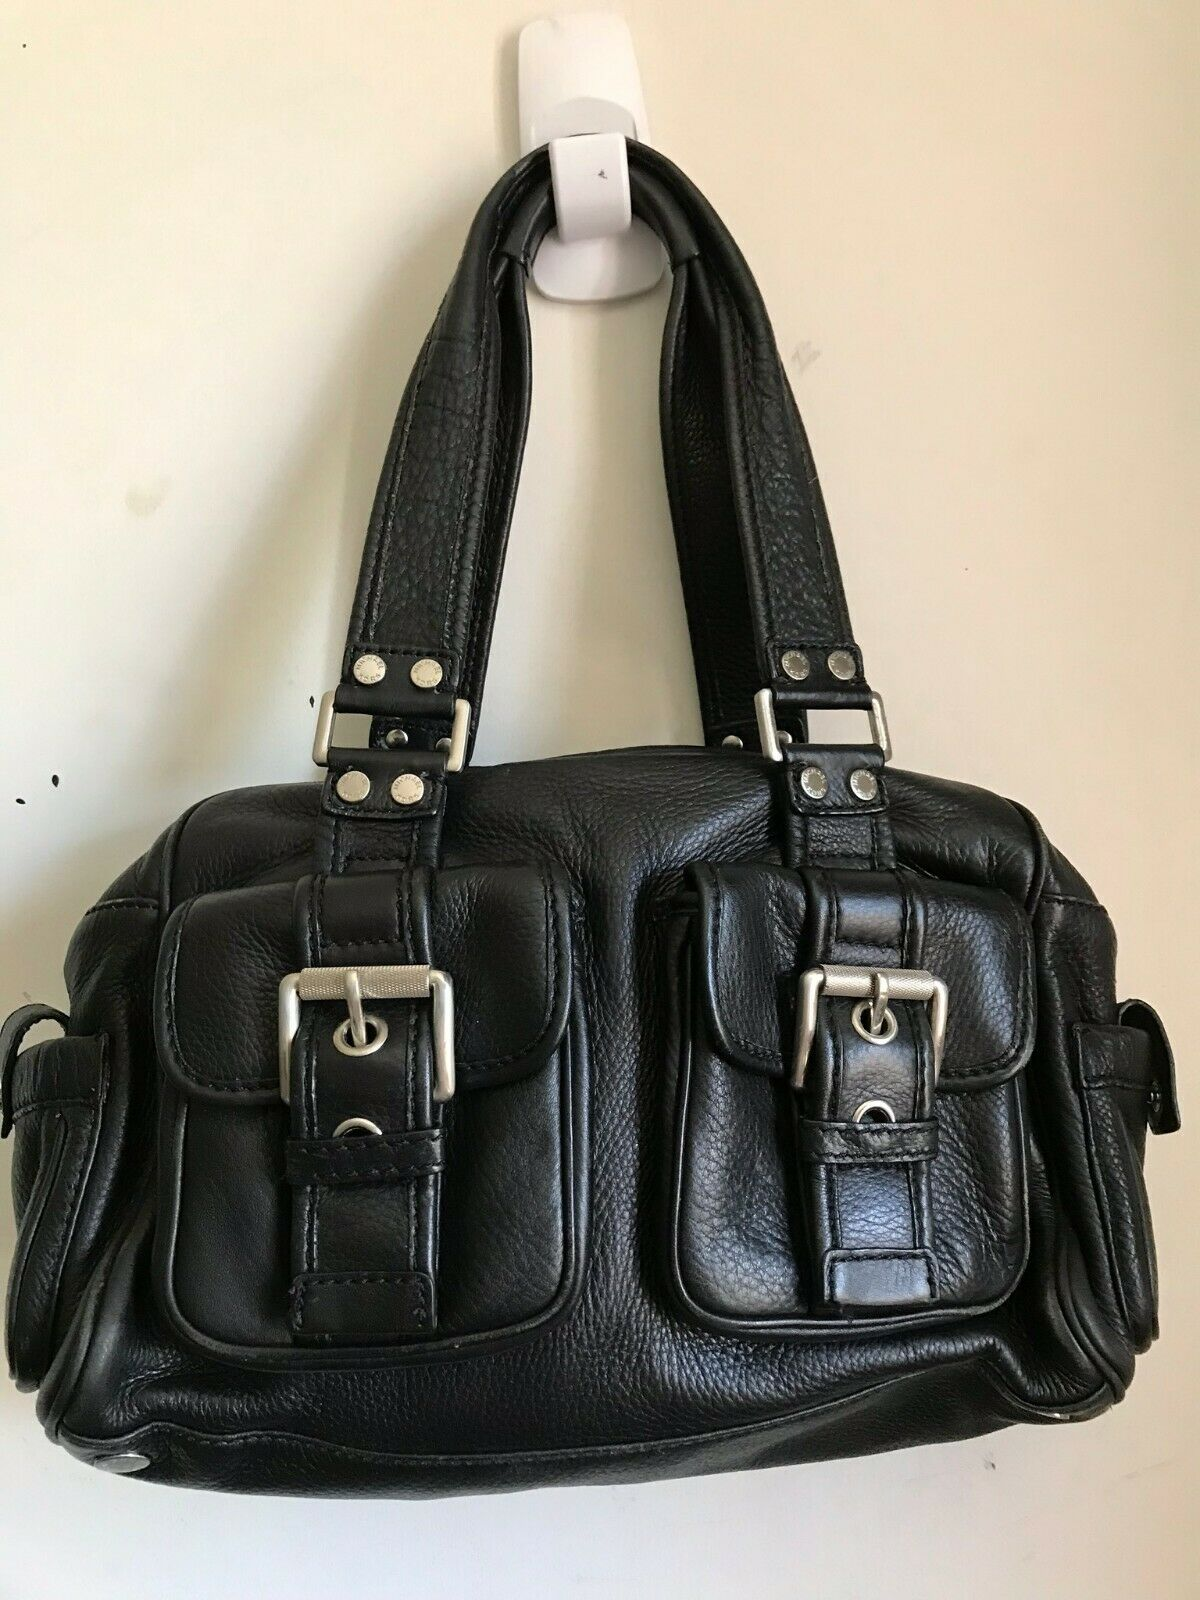 Michael Kors Medium Leather Tote Shoulder Bag - Black